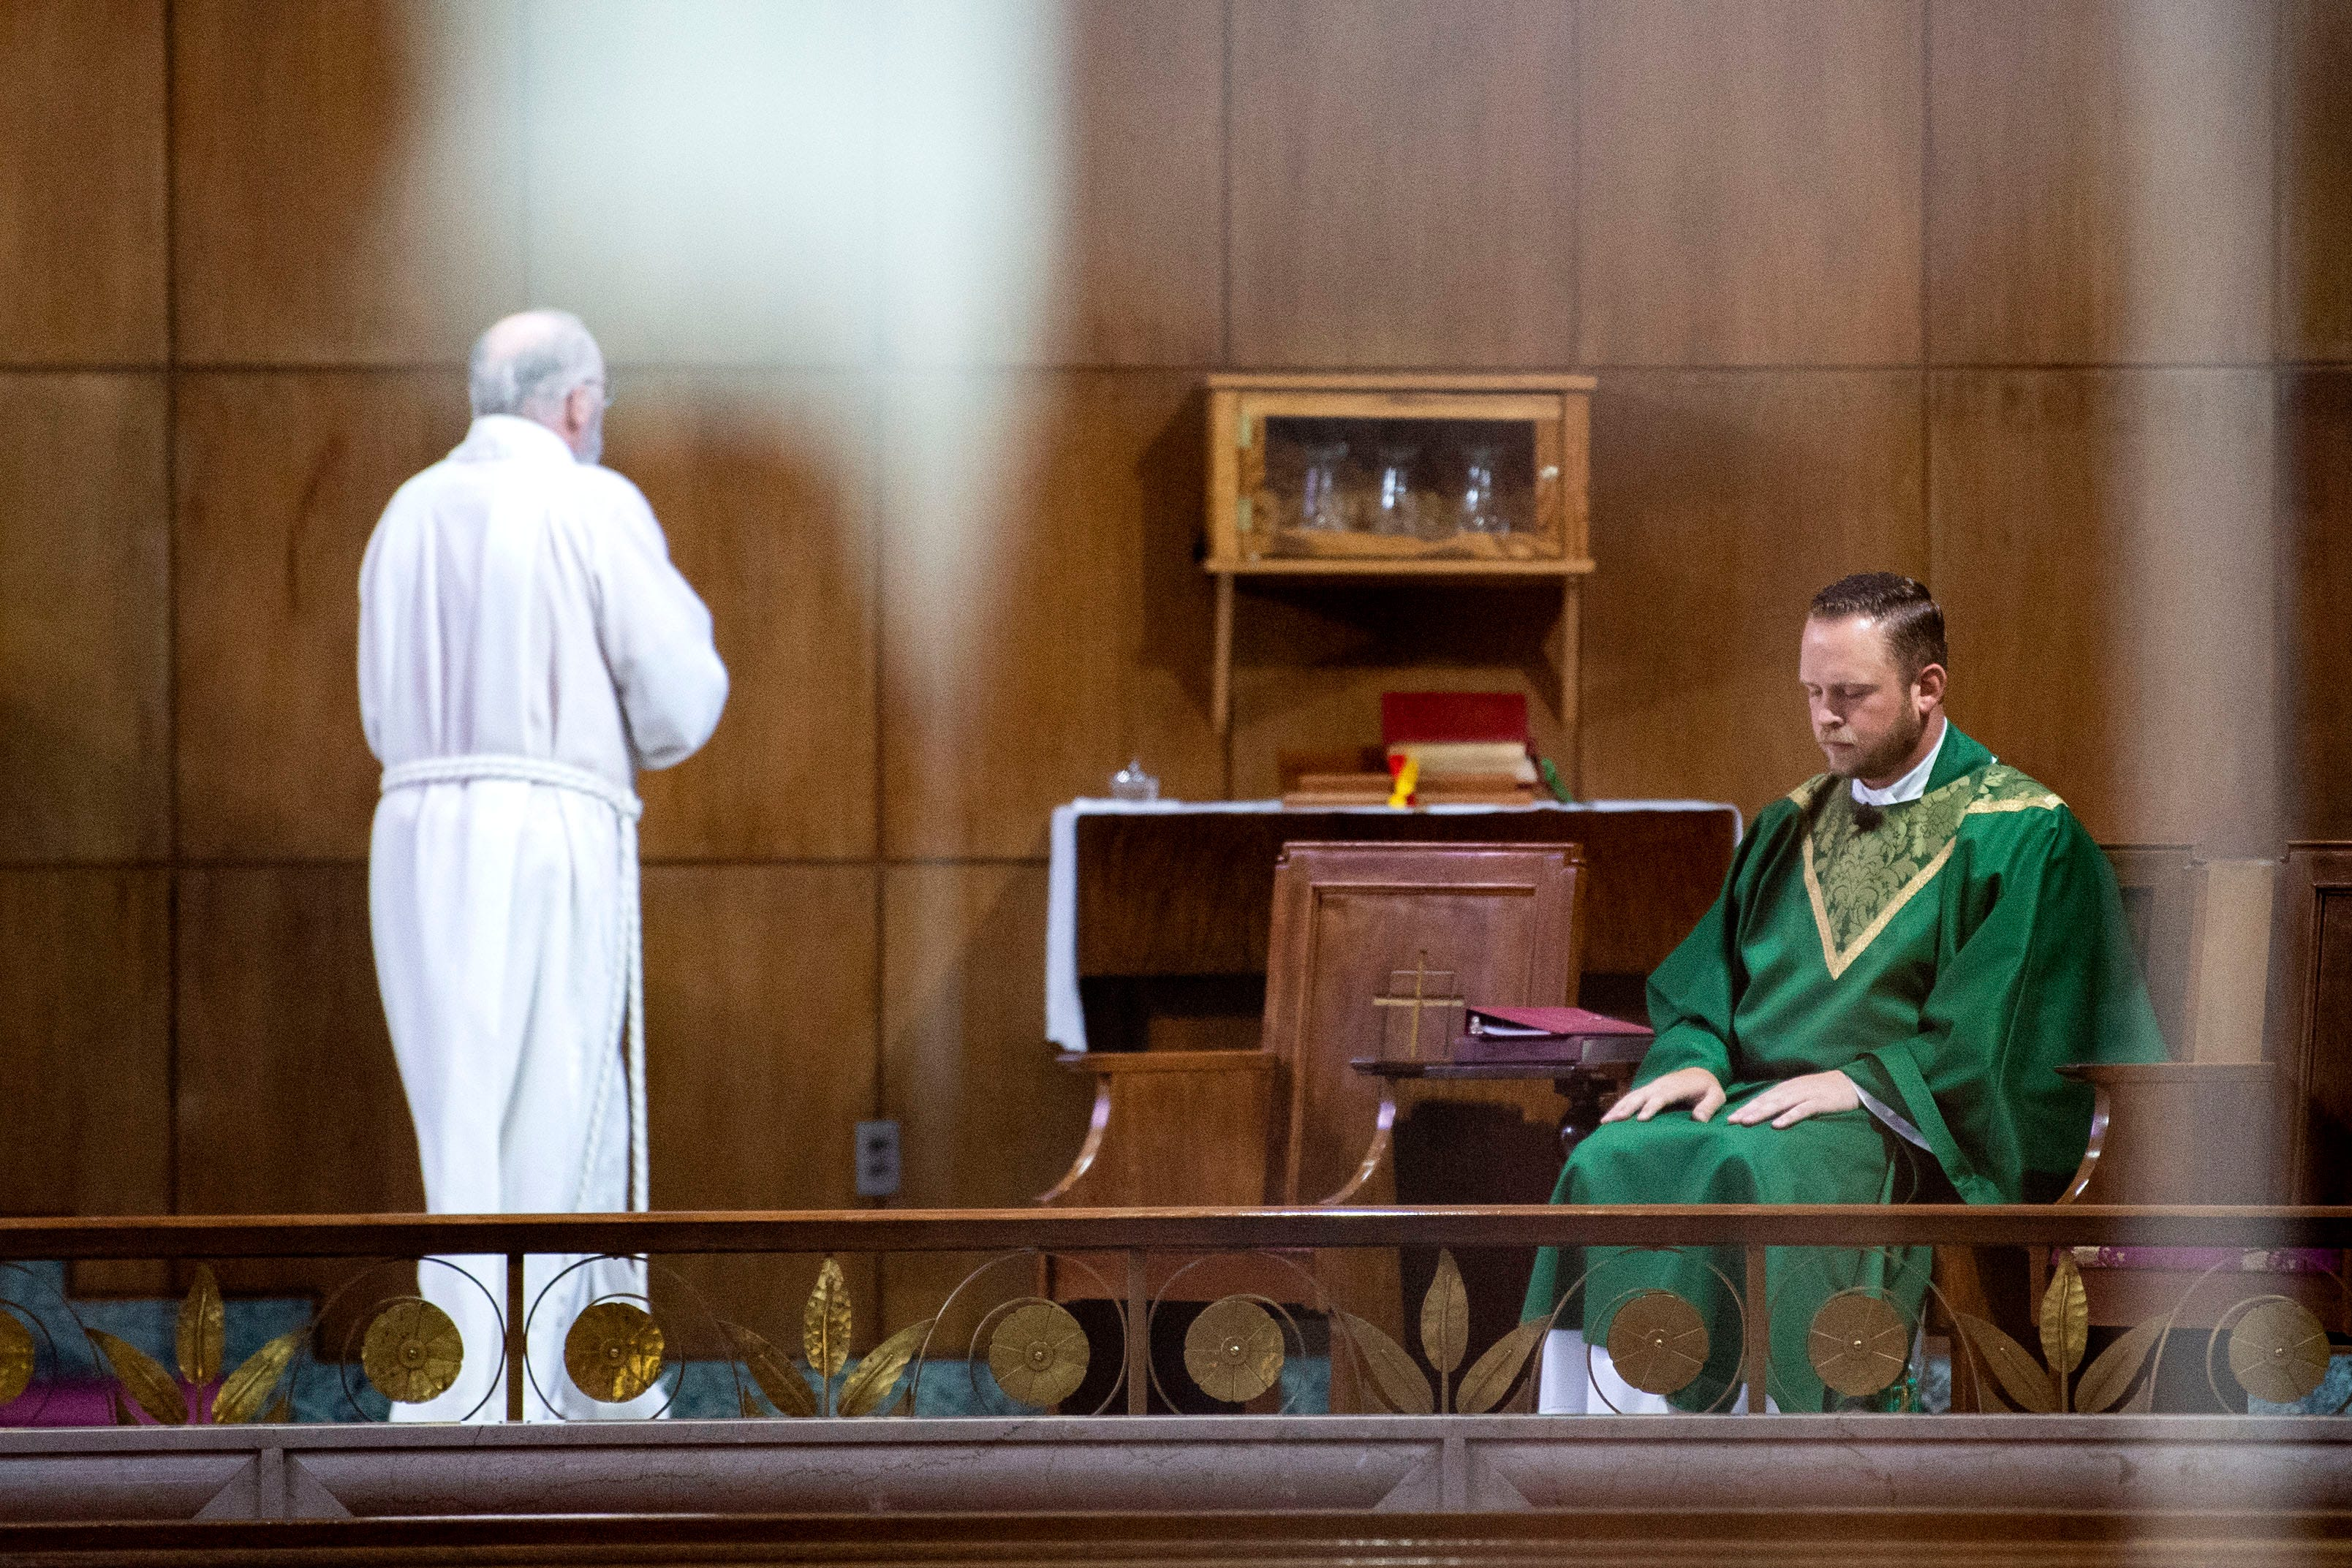 The secret of confession - the rule of priests